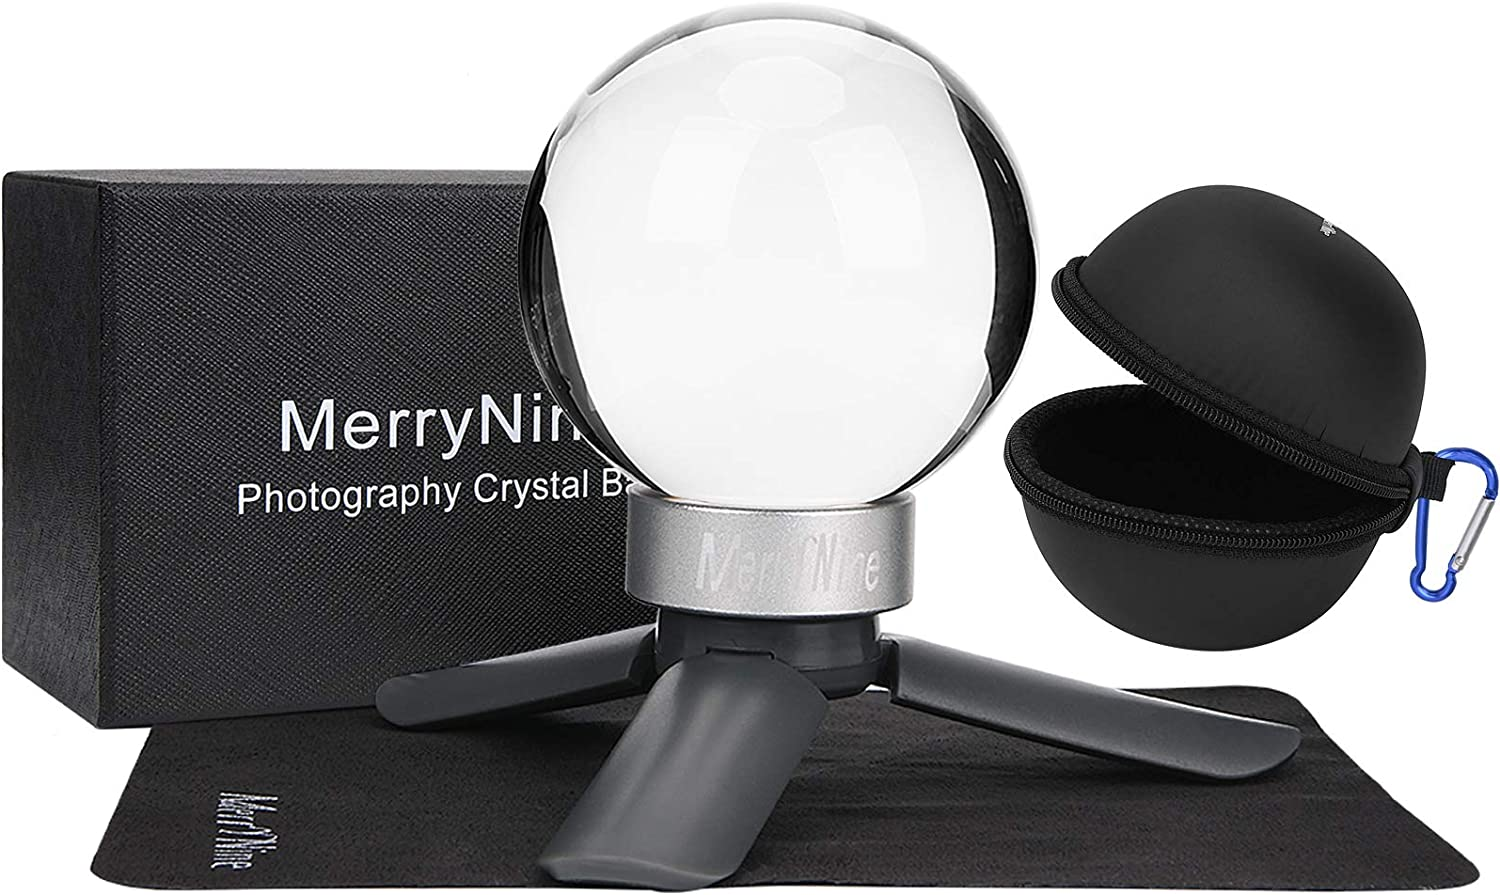 MerryNine 80mm//3.15 Photograph K9 Crystal Ball with Stylish Metallic Stand and Microfiber Pouch Black Decorative and Photography Accessory